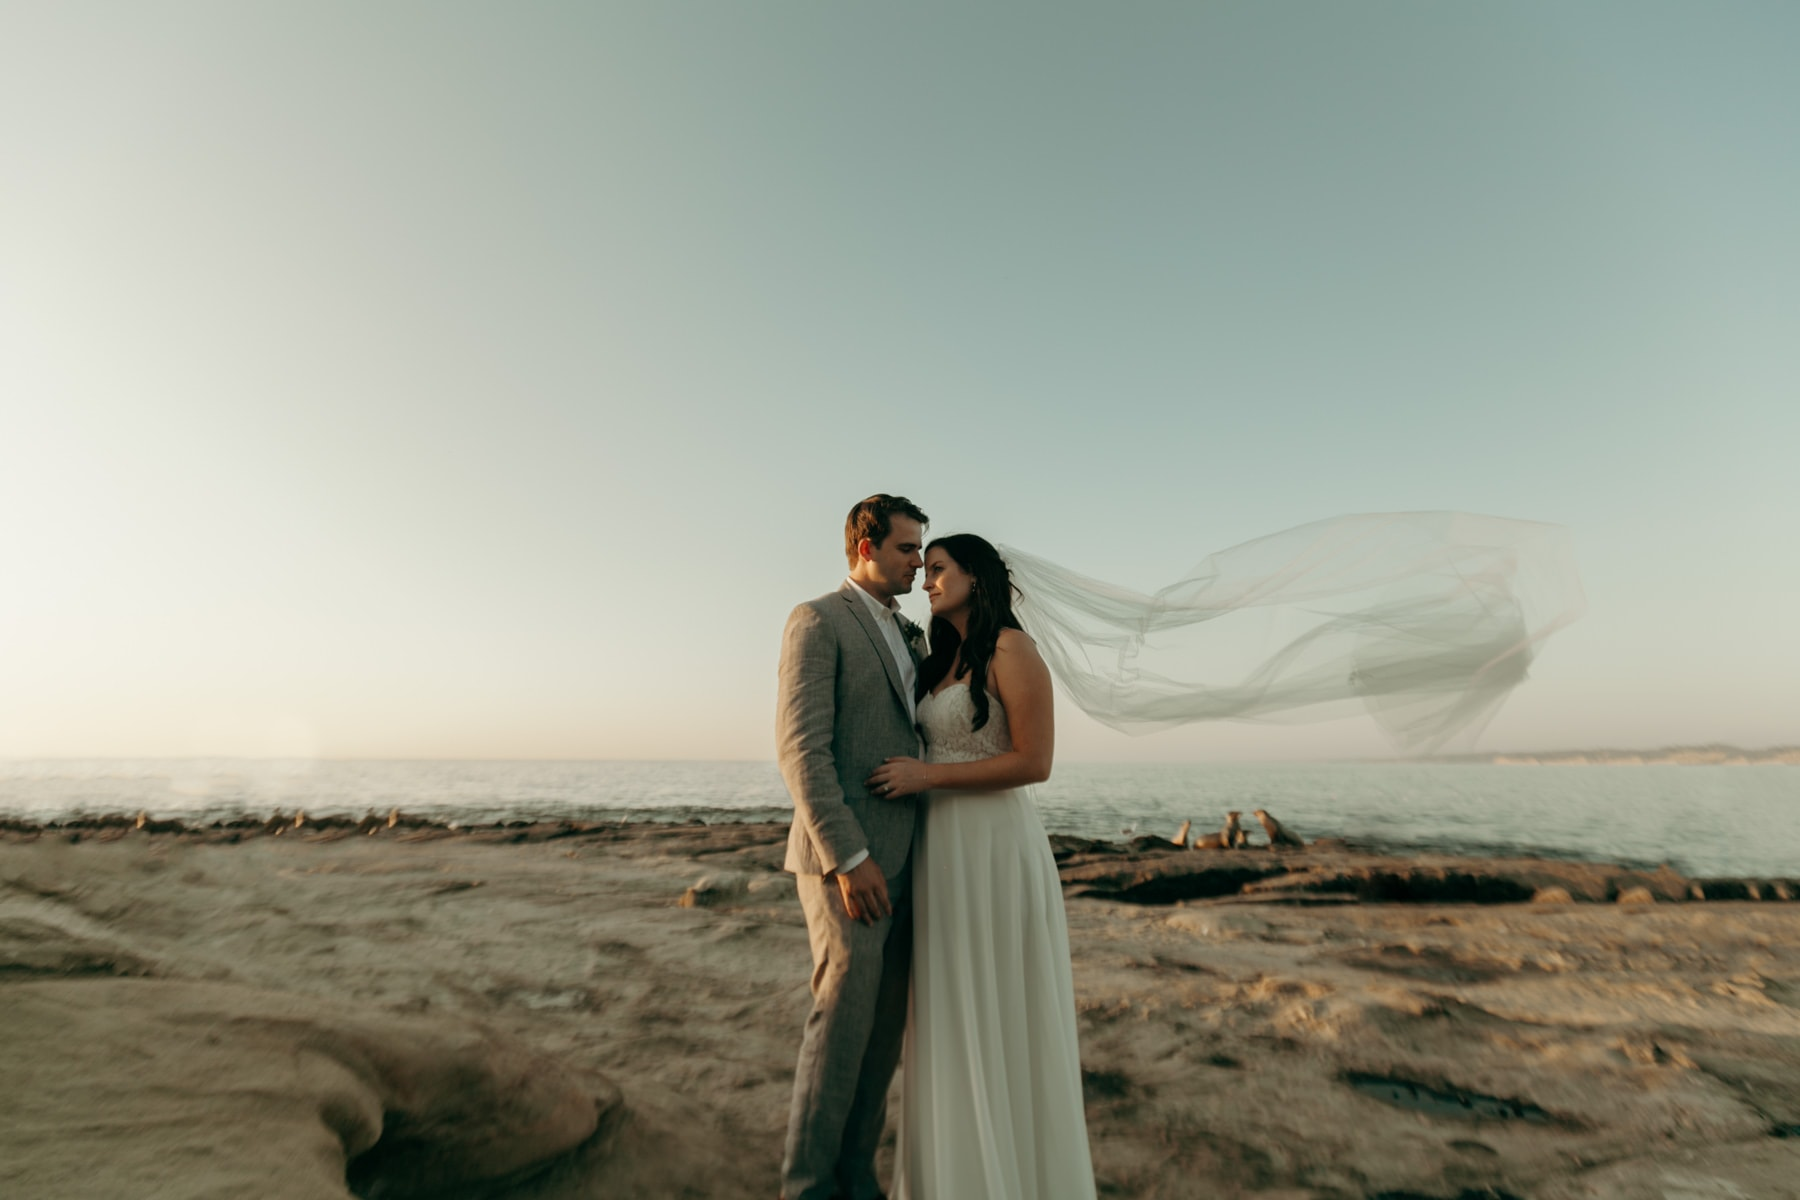 ellen browning scripps park wedding